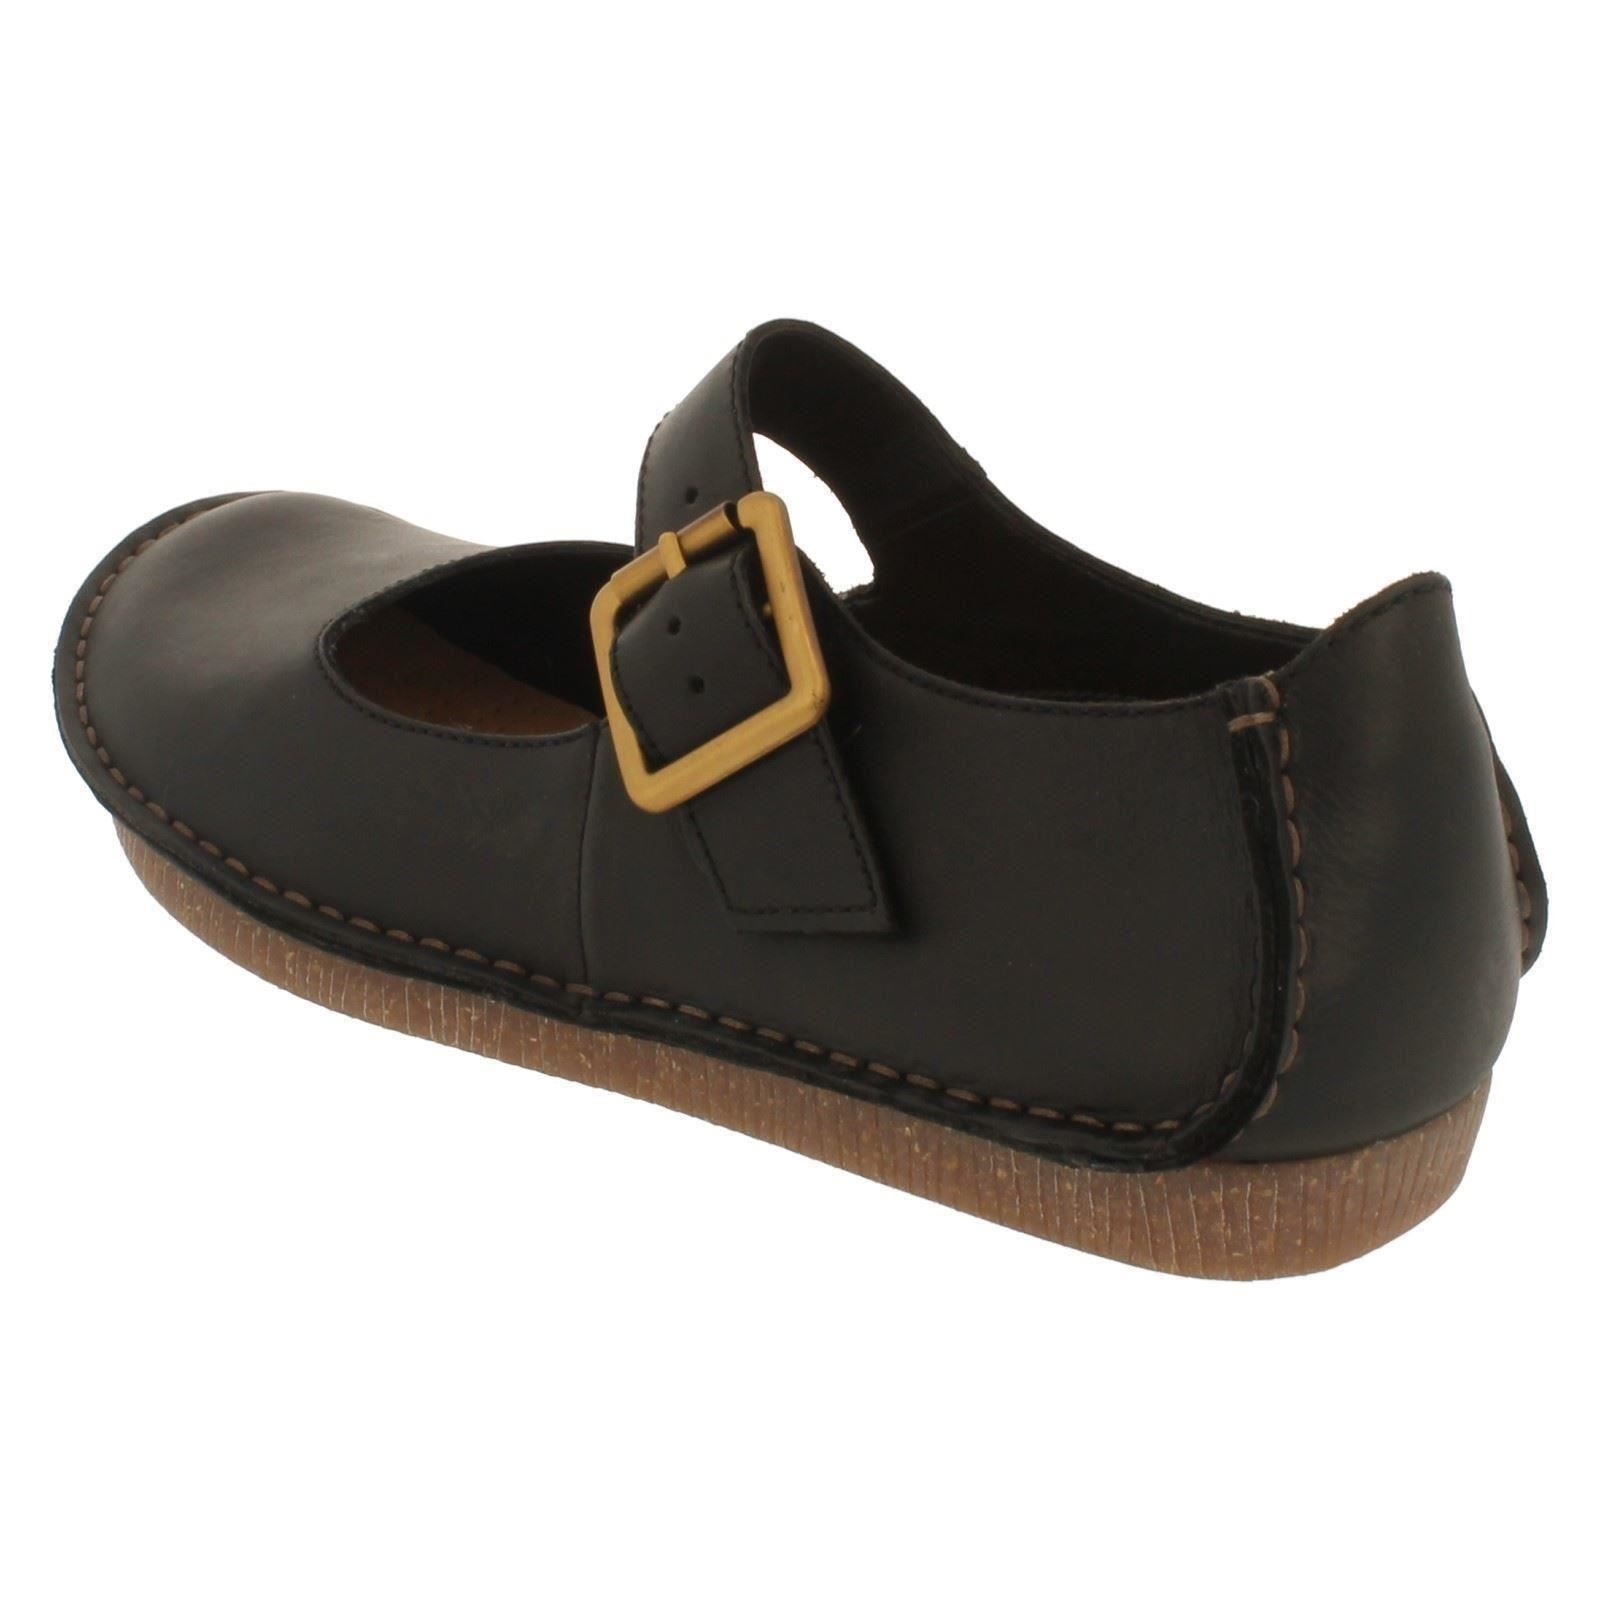 Clarks Discovery Ritz Shoes